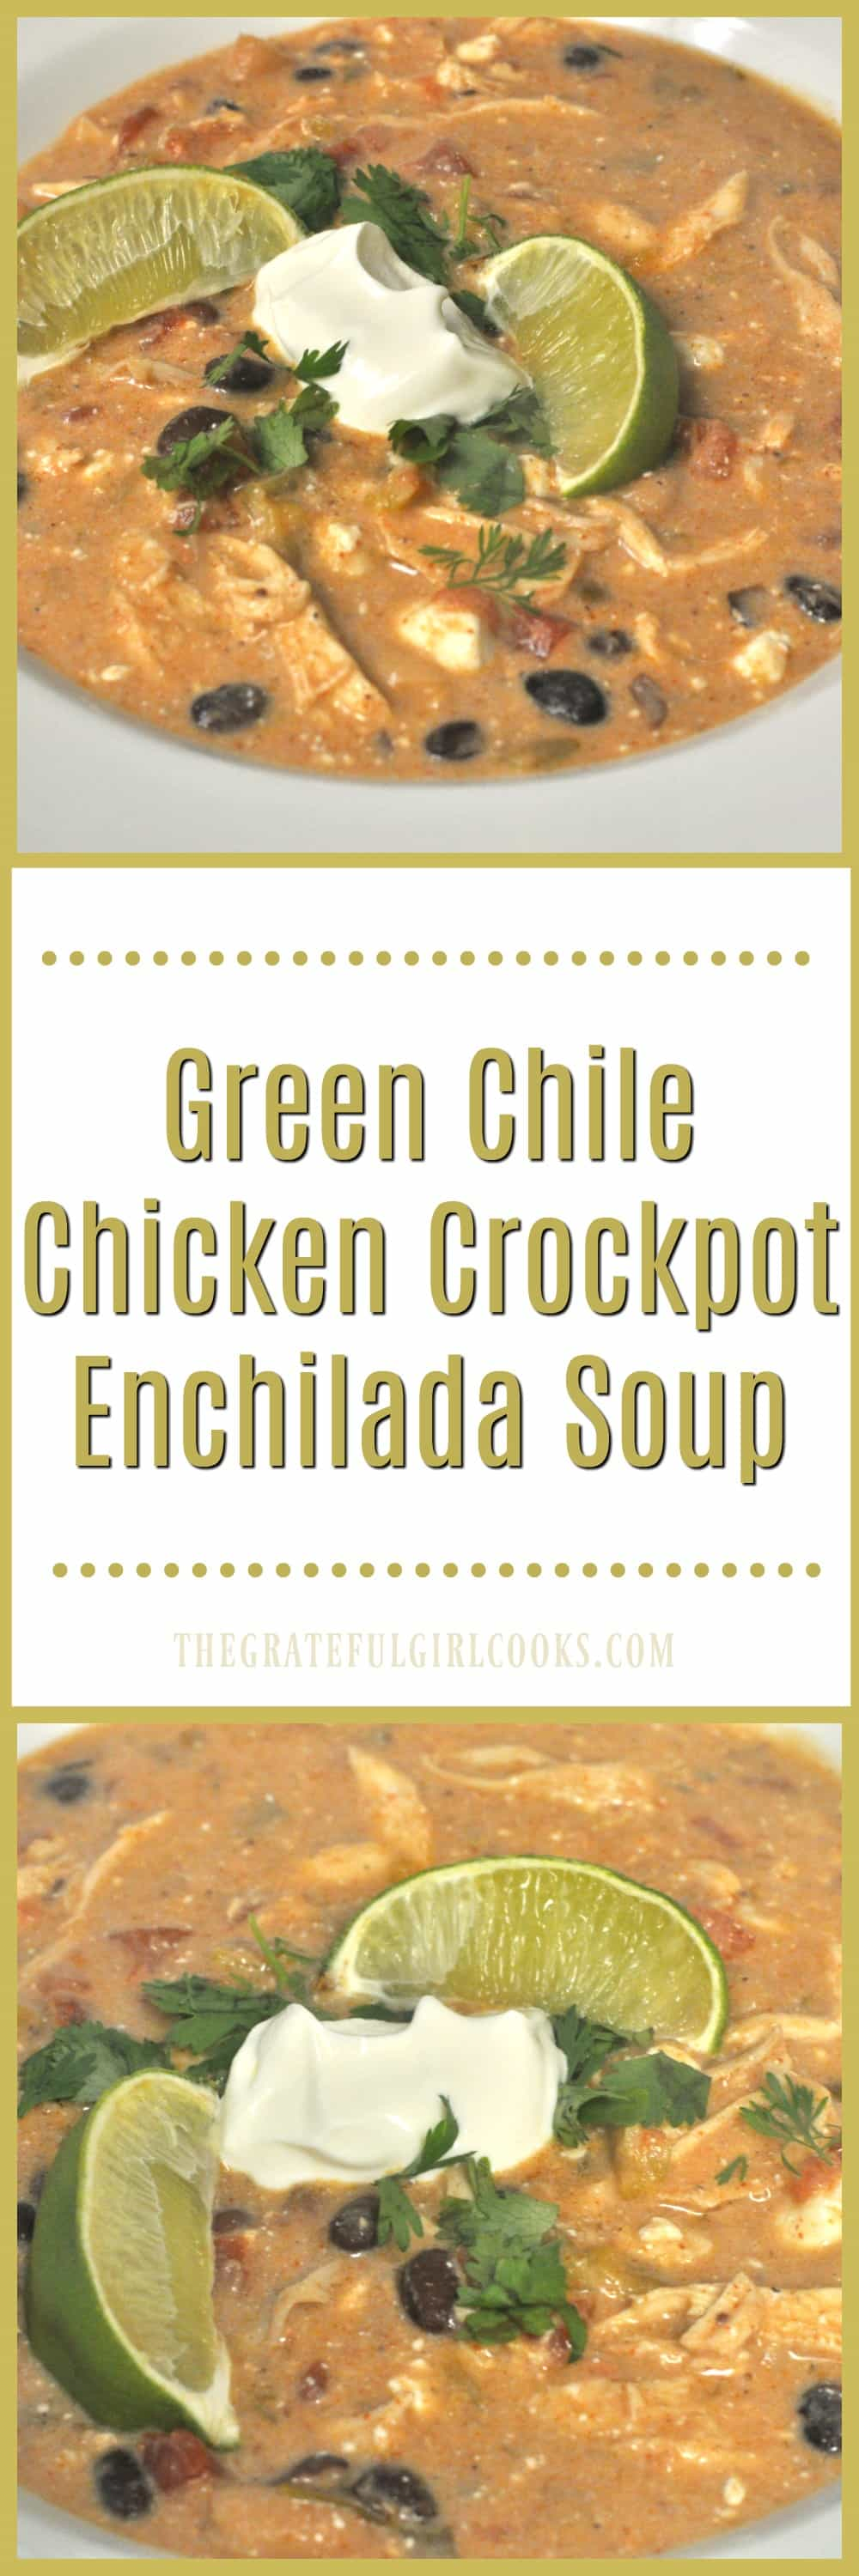 Green Chile Chicken Crockpot Enchilada Soup / The Grateful Girl Cooks!